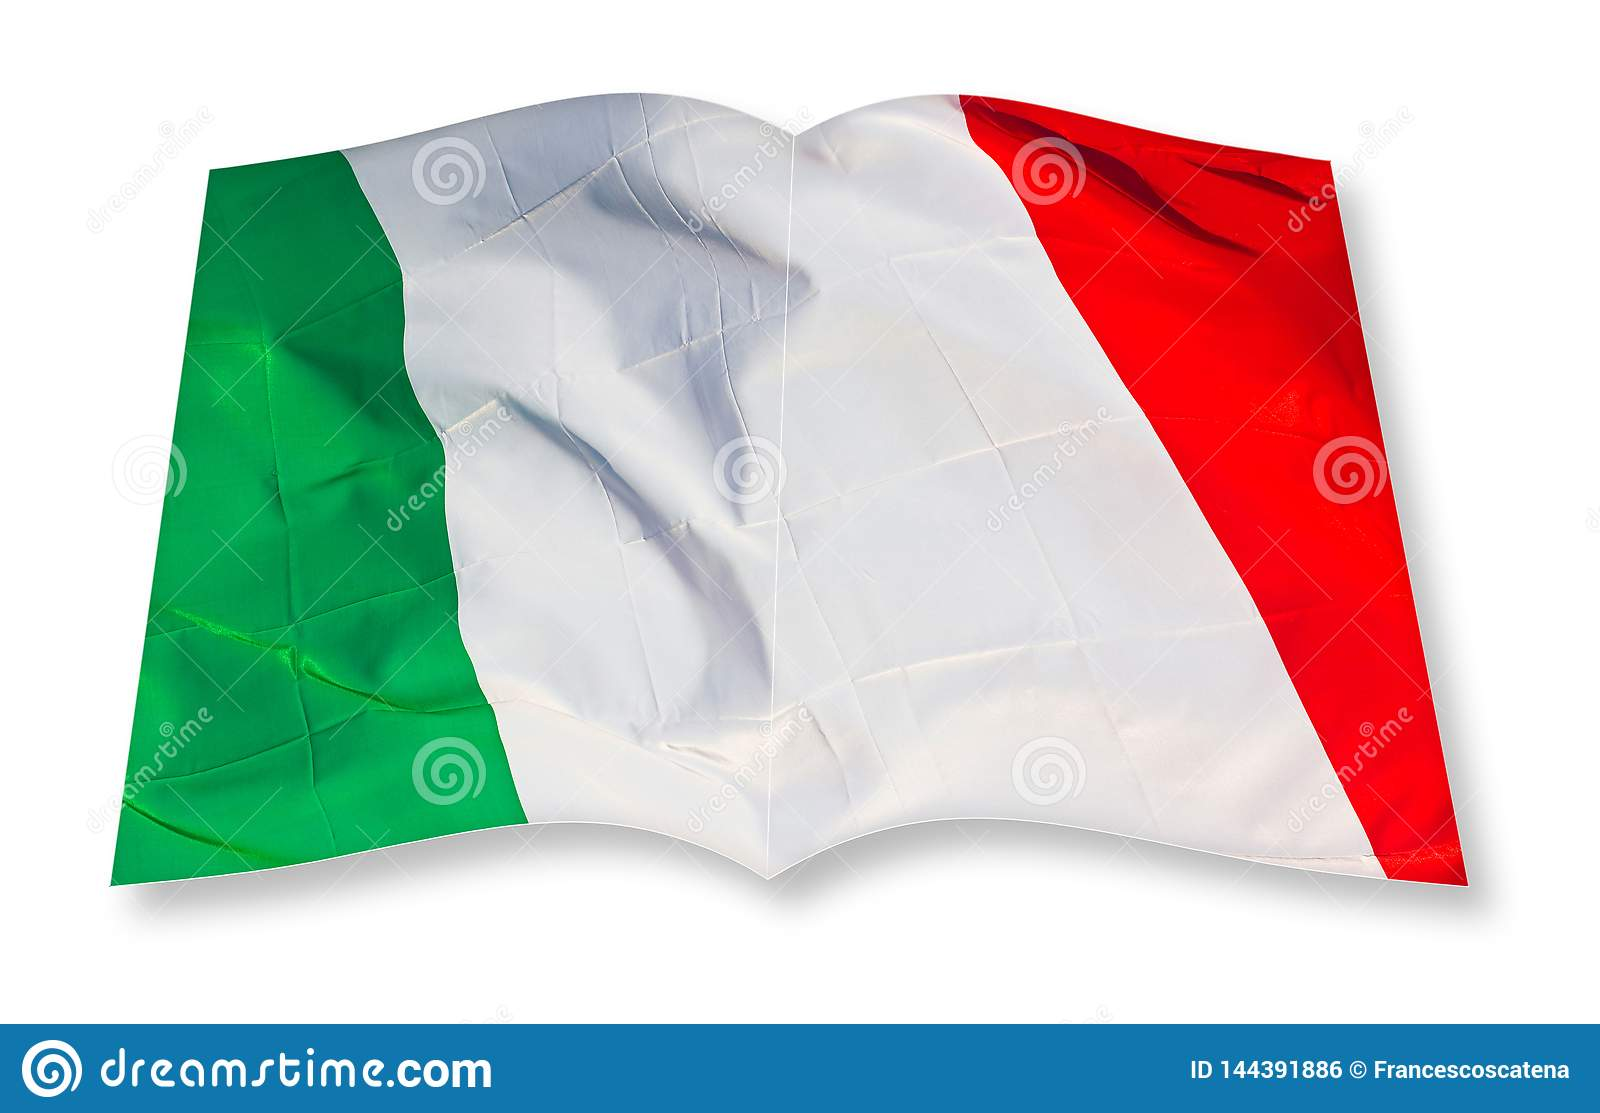 Green, white and red italian flag concept image - 3D rendering concept image of an opened photo book isolated on white - I`m the